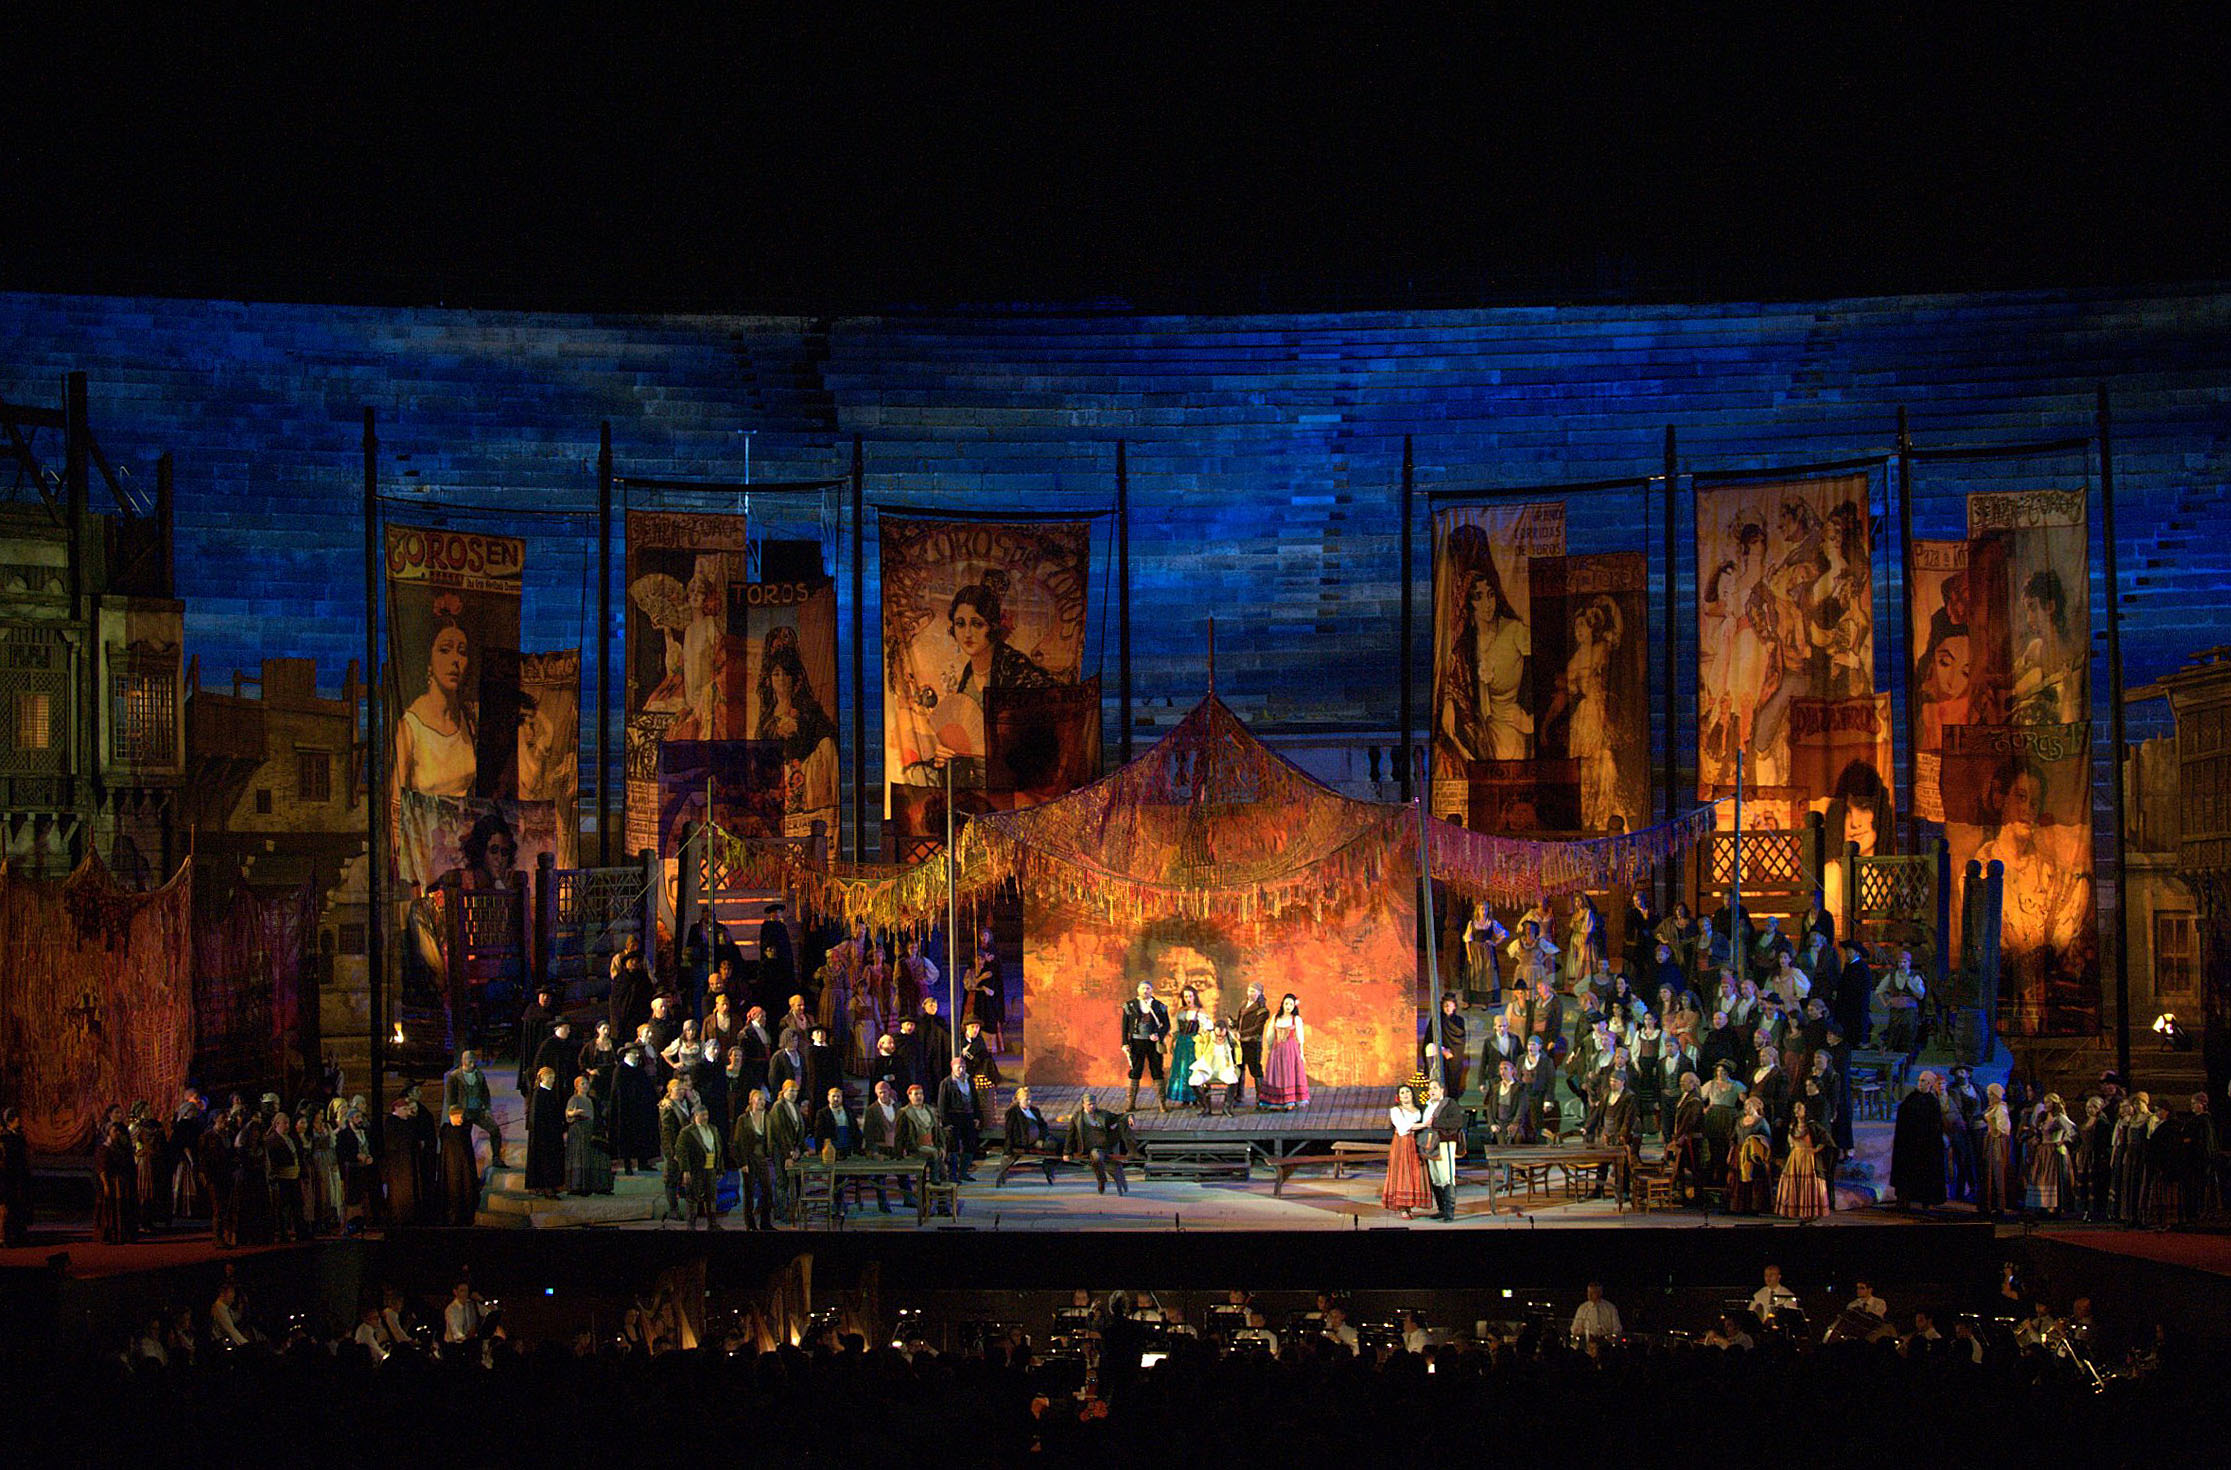 Carmen In Verona: Fusion Of Cultures And Spectacle | HuffPost